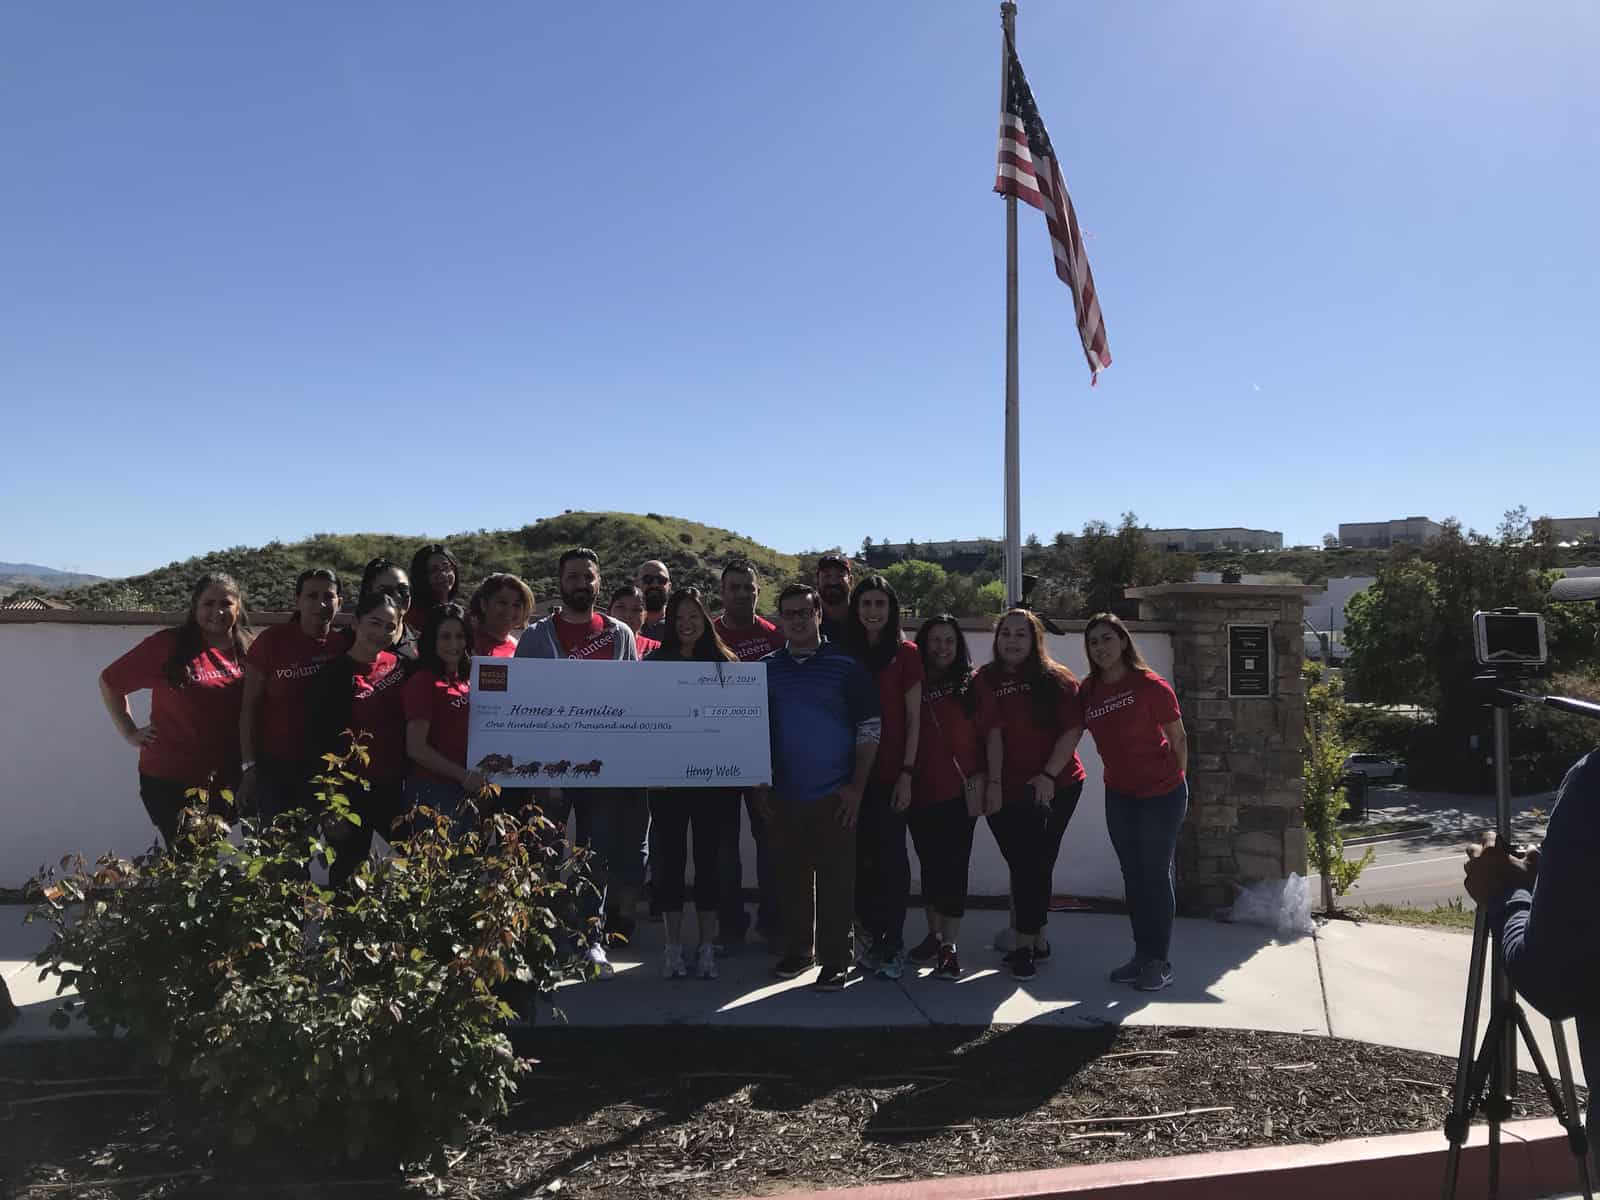 Wells Fargo Presents Grant to Homes 4 Families